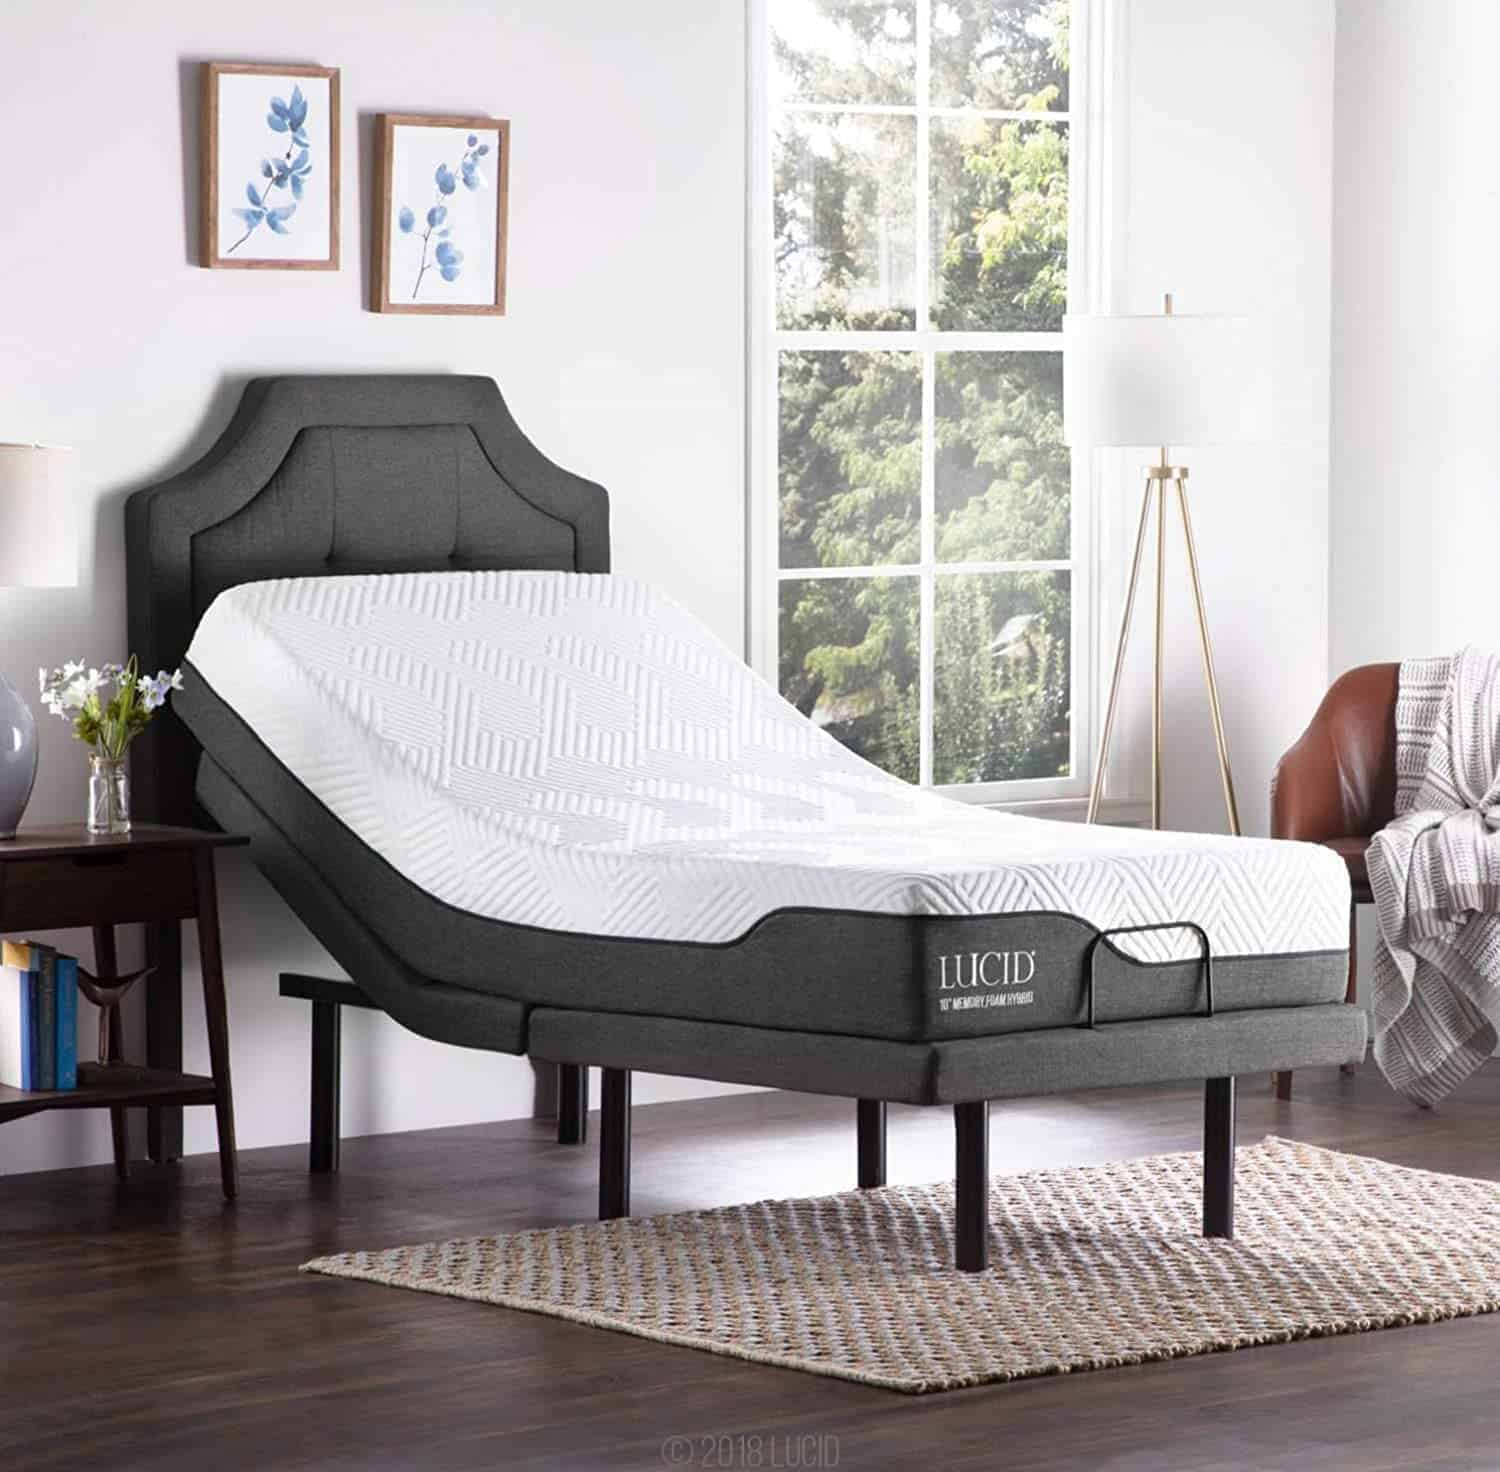 Lucid L300 Adjustable Bed